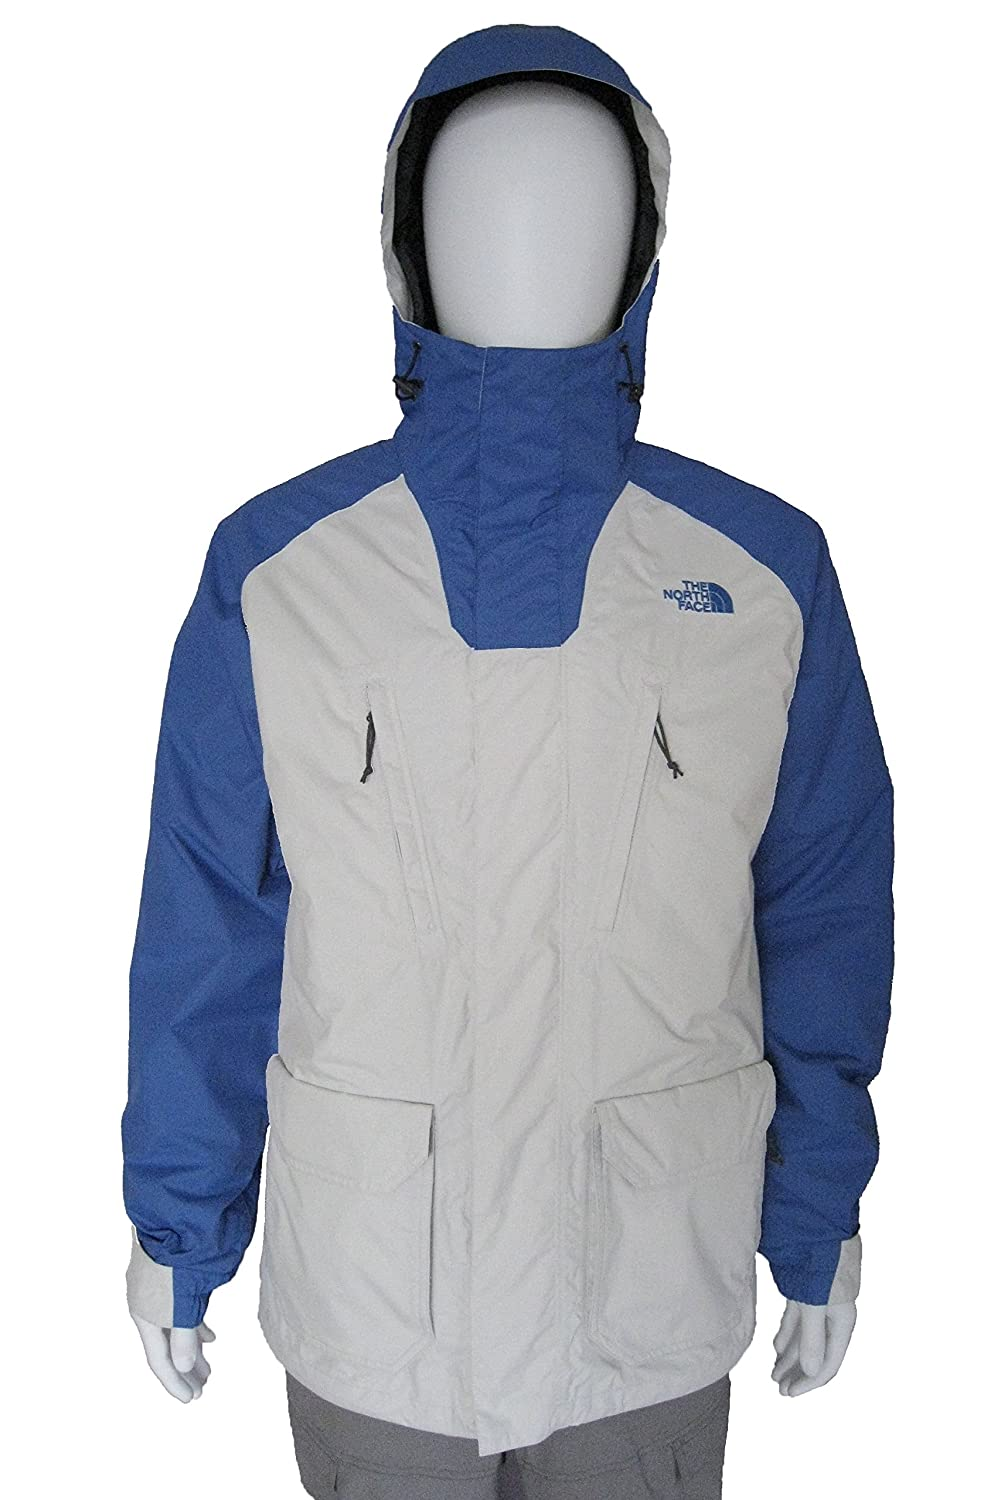 Amazon.com: The North Face Womens Cletch Triclimate Jacket (Moonlight Ivory, CYB0-128) (Medium): Sports & Outdoors